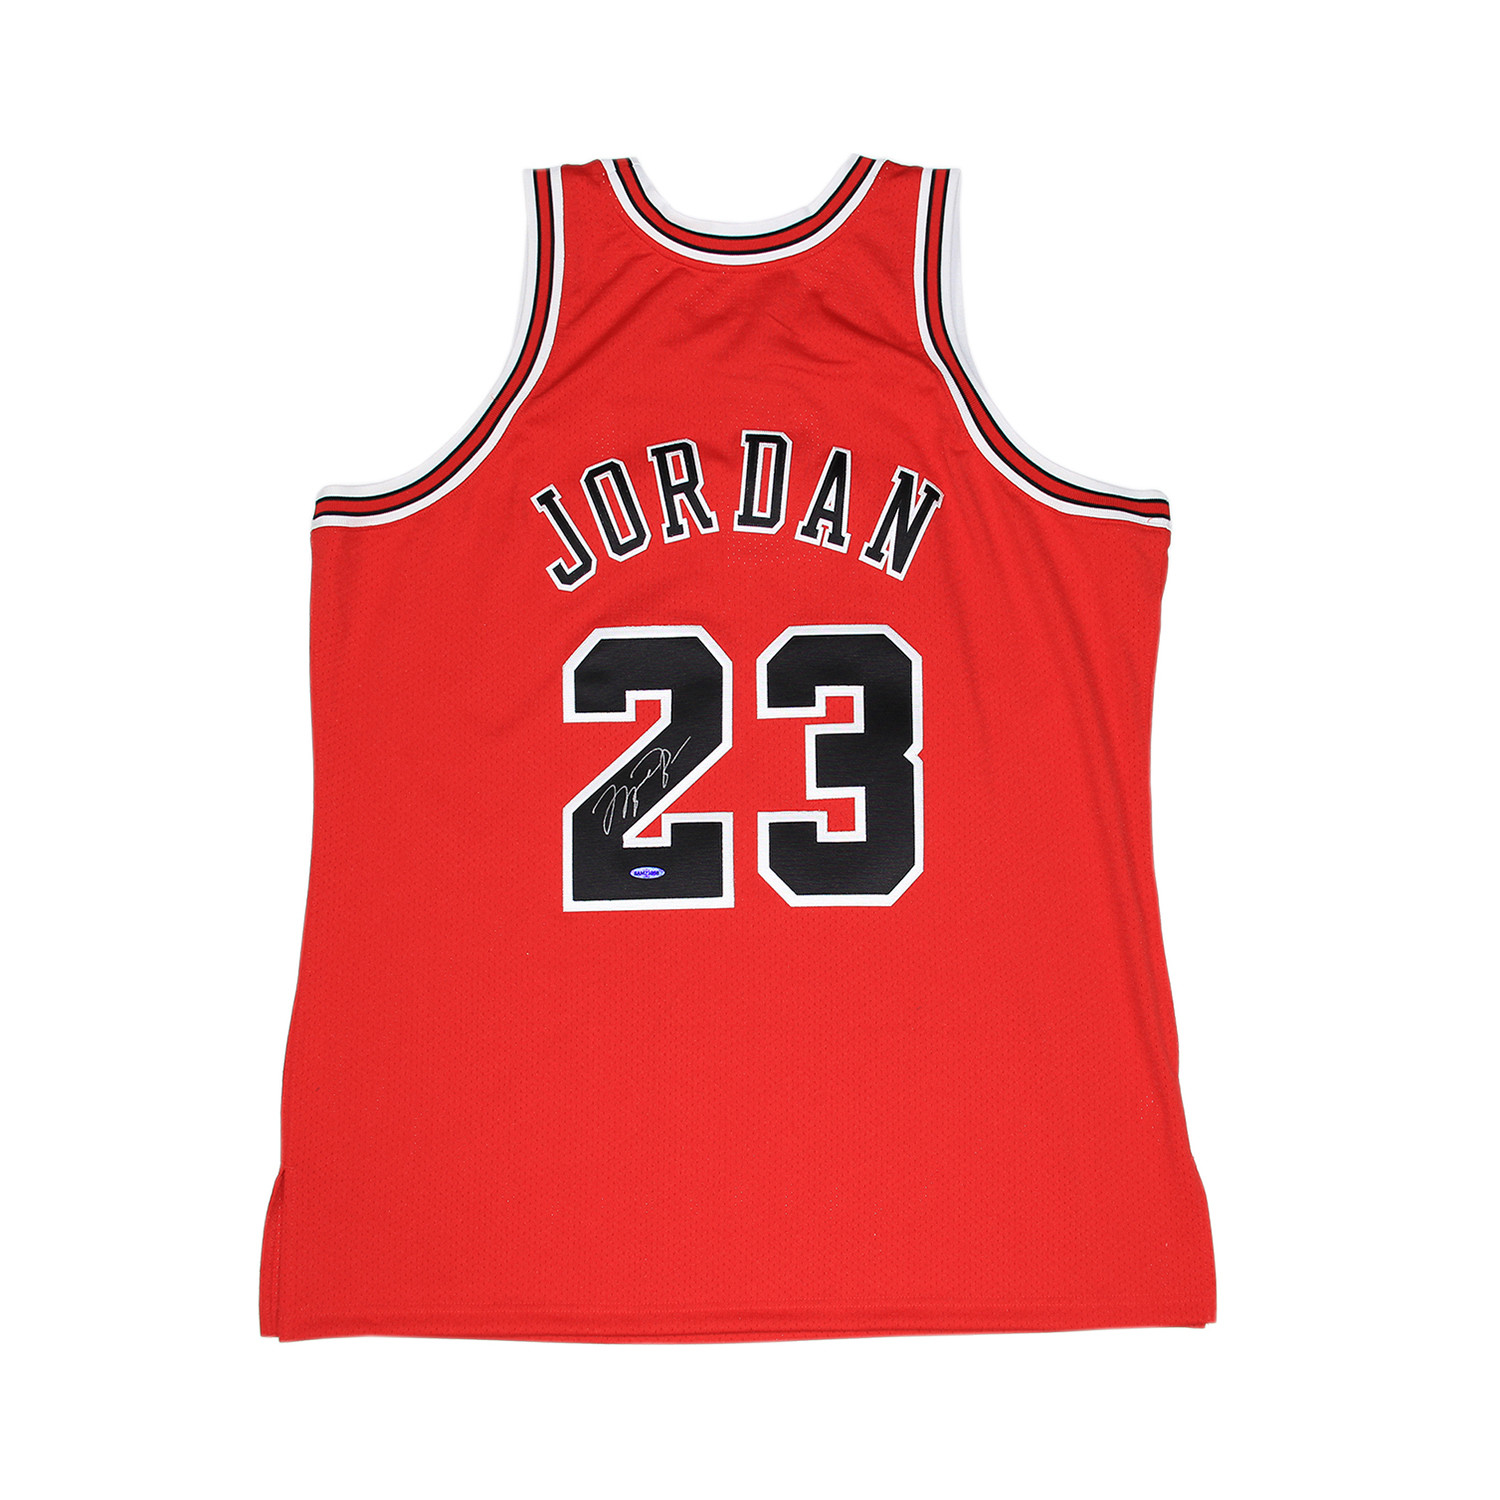 buy online fc507 a50f6 Michael Jordan Signed Chicago Bulls Jersey - Clearance: Just ...